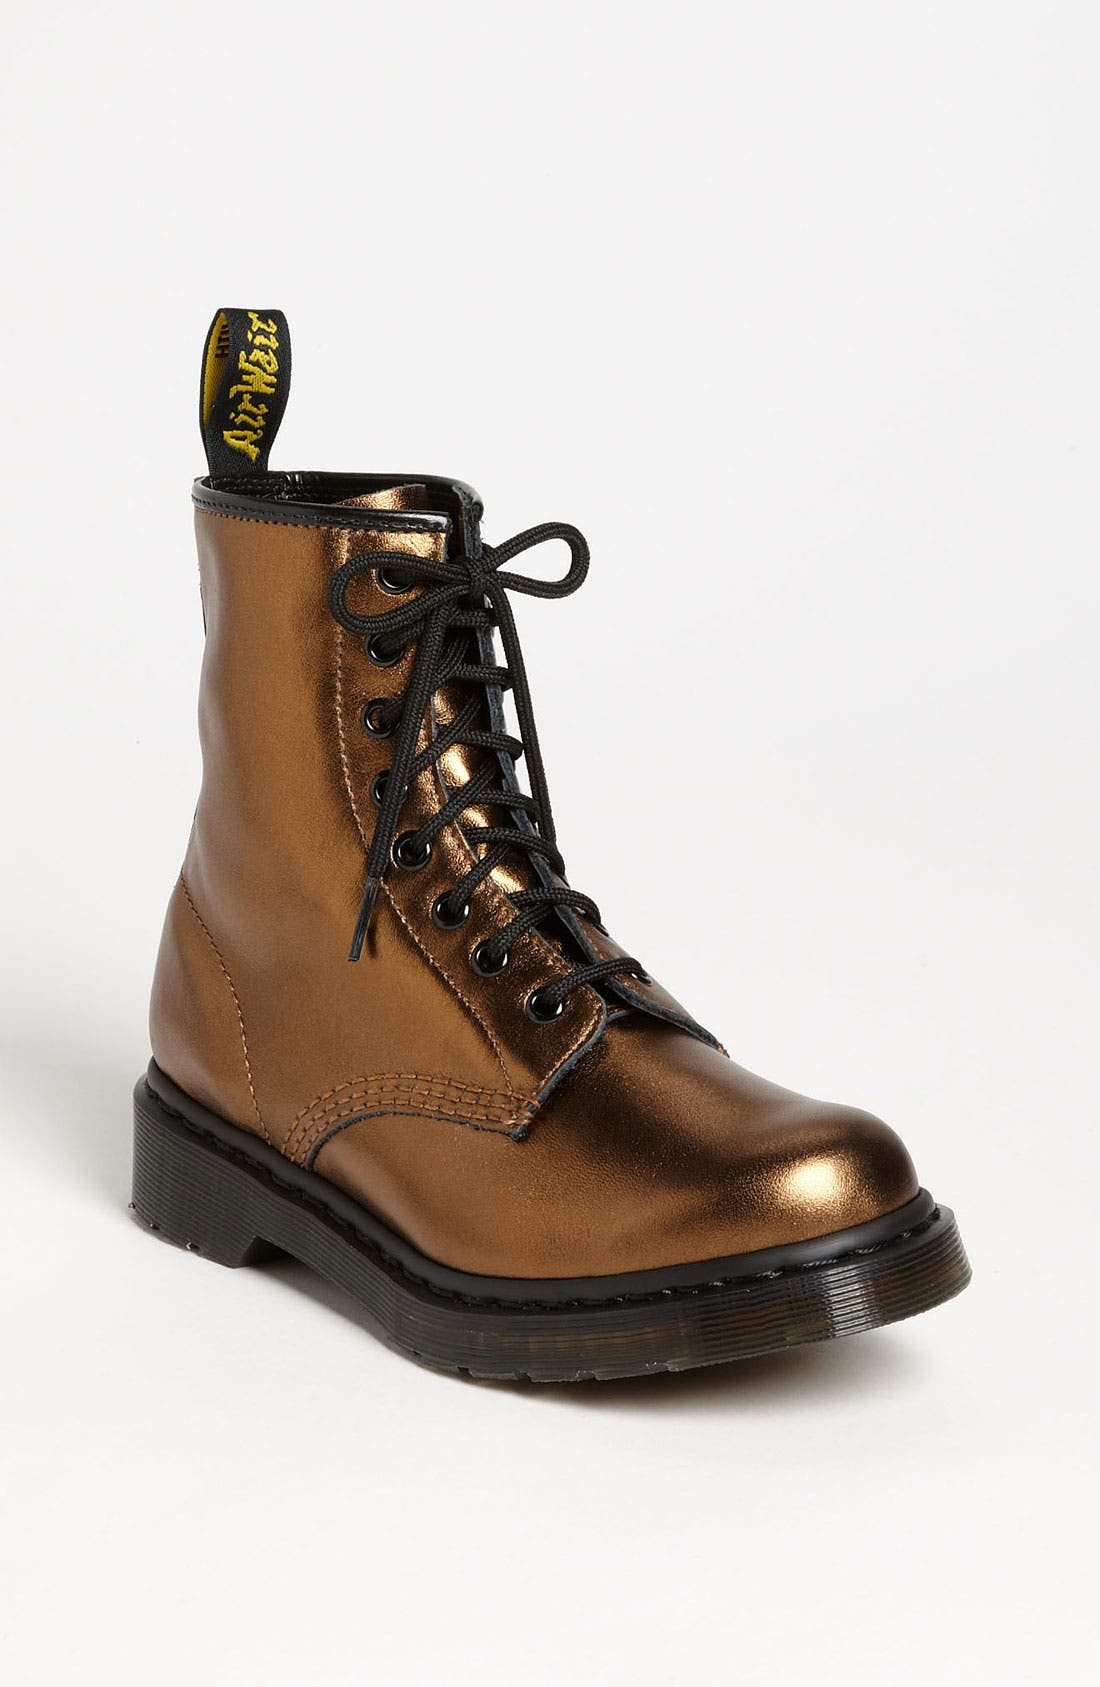 Alternate Image 1 Selected - Dr. Martens '1460' Boot